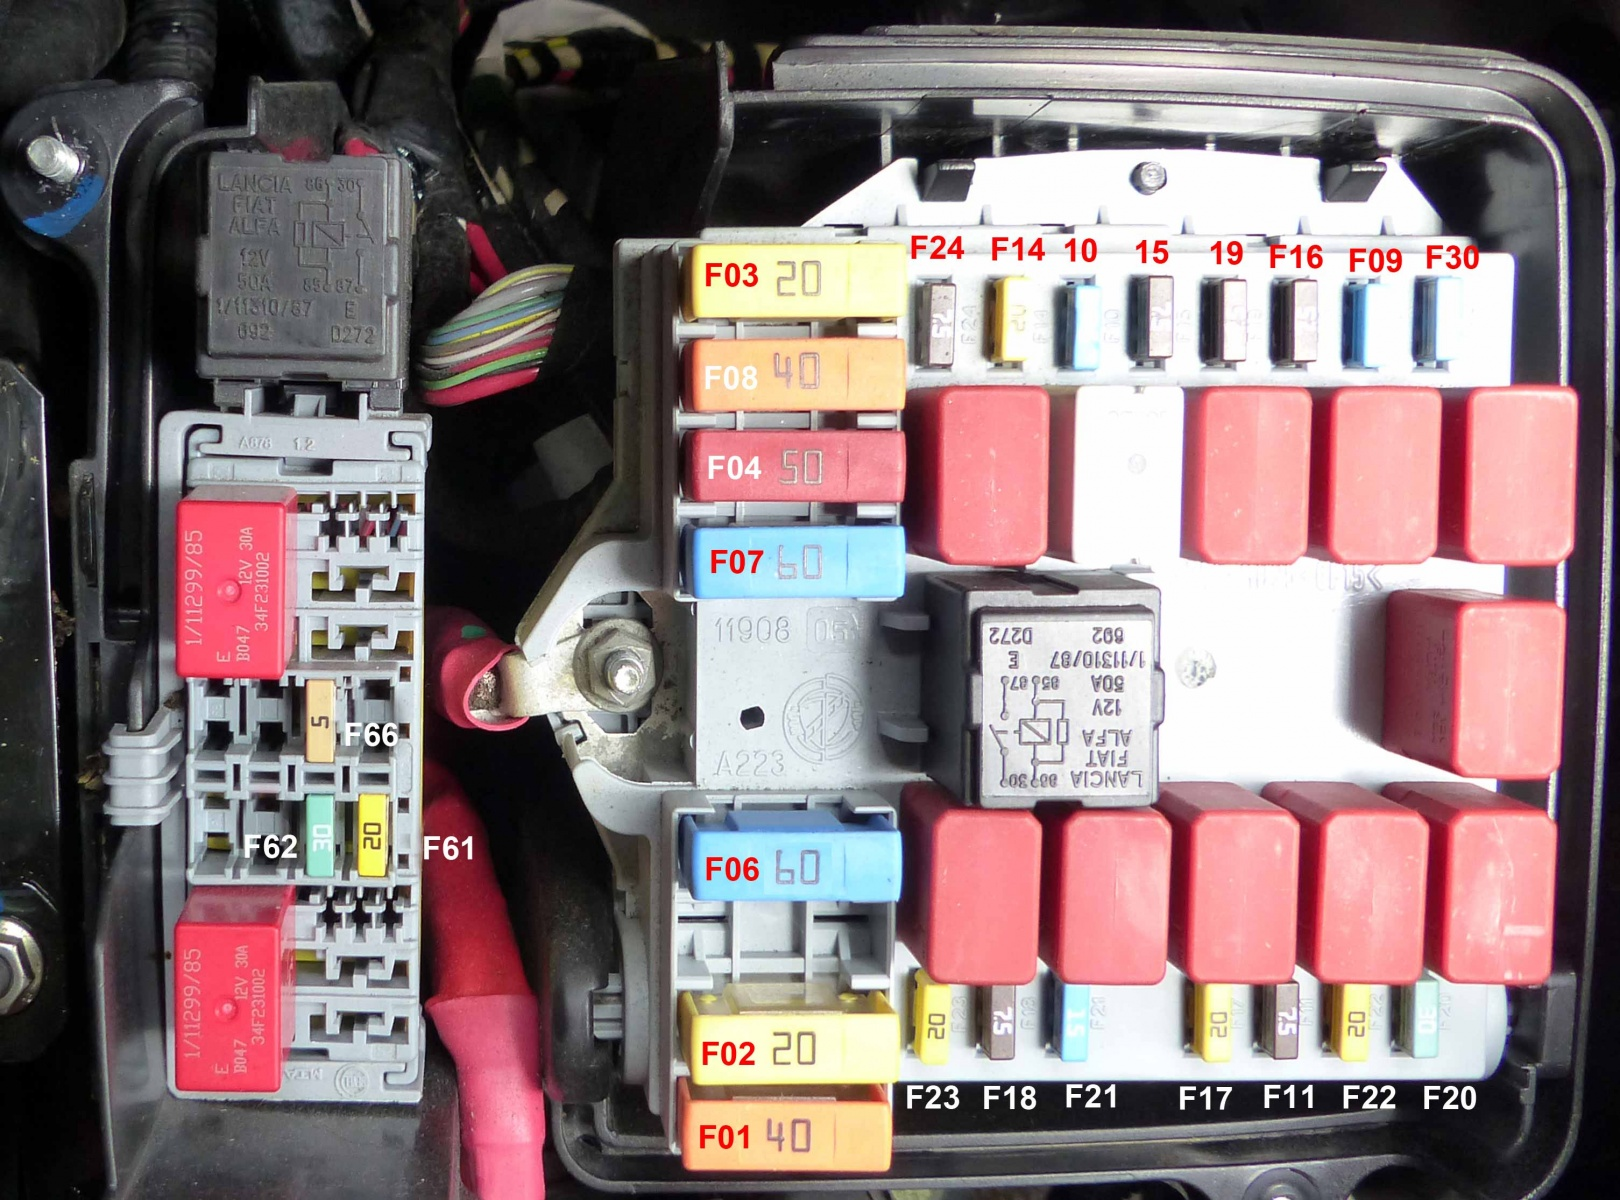 Diagram of fuses on the Promaster | Ram Promaster Forum | 2014 Ram Promaster Fuse Box |  | Ram Promaster Forum